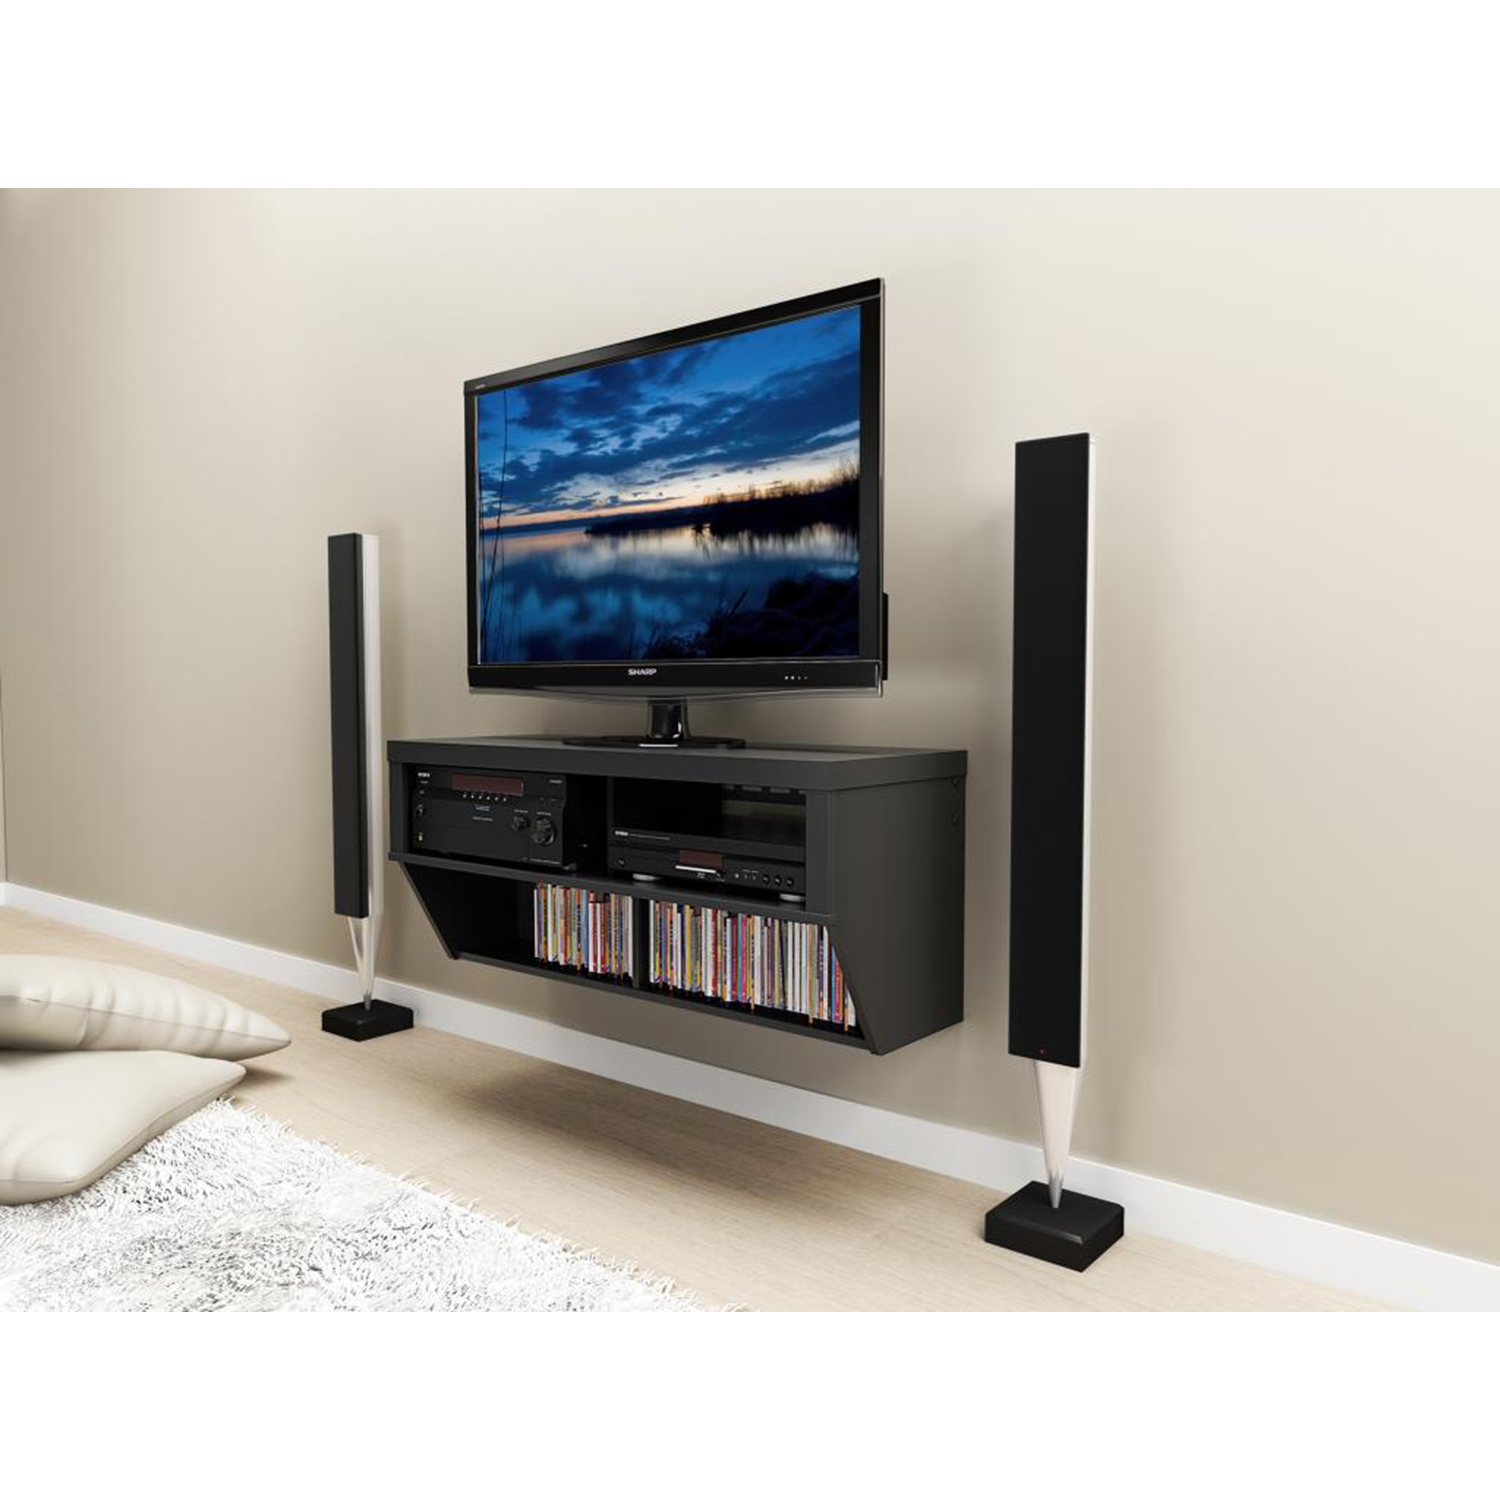 Series 9 Designer 42 Inch Wide Wall Mounted Audio Video - Black - PRE-BCAW-0507-1